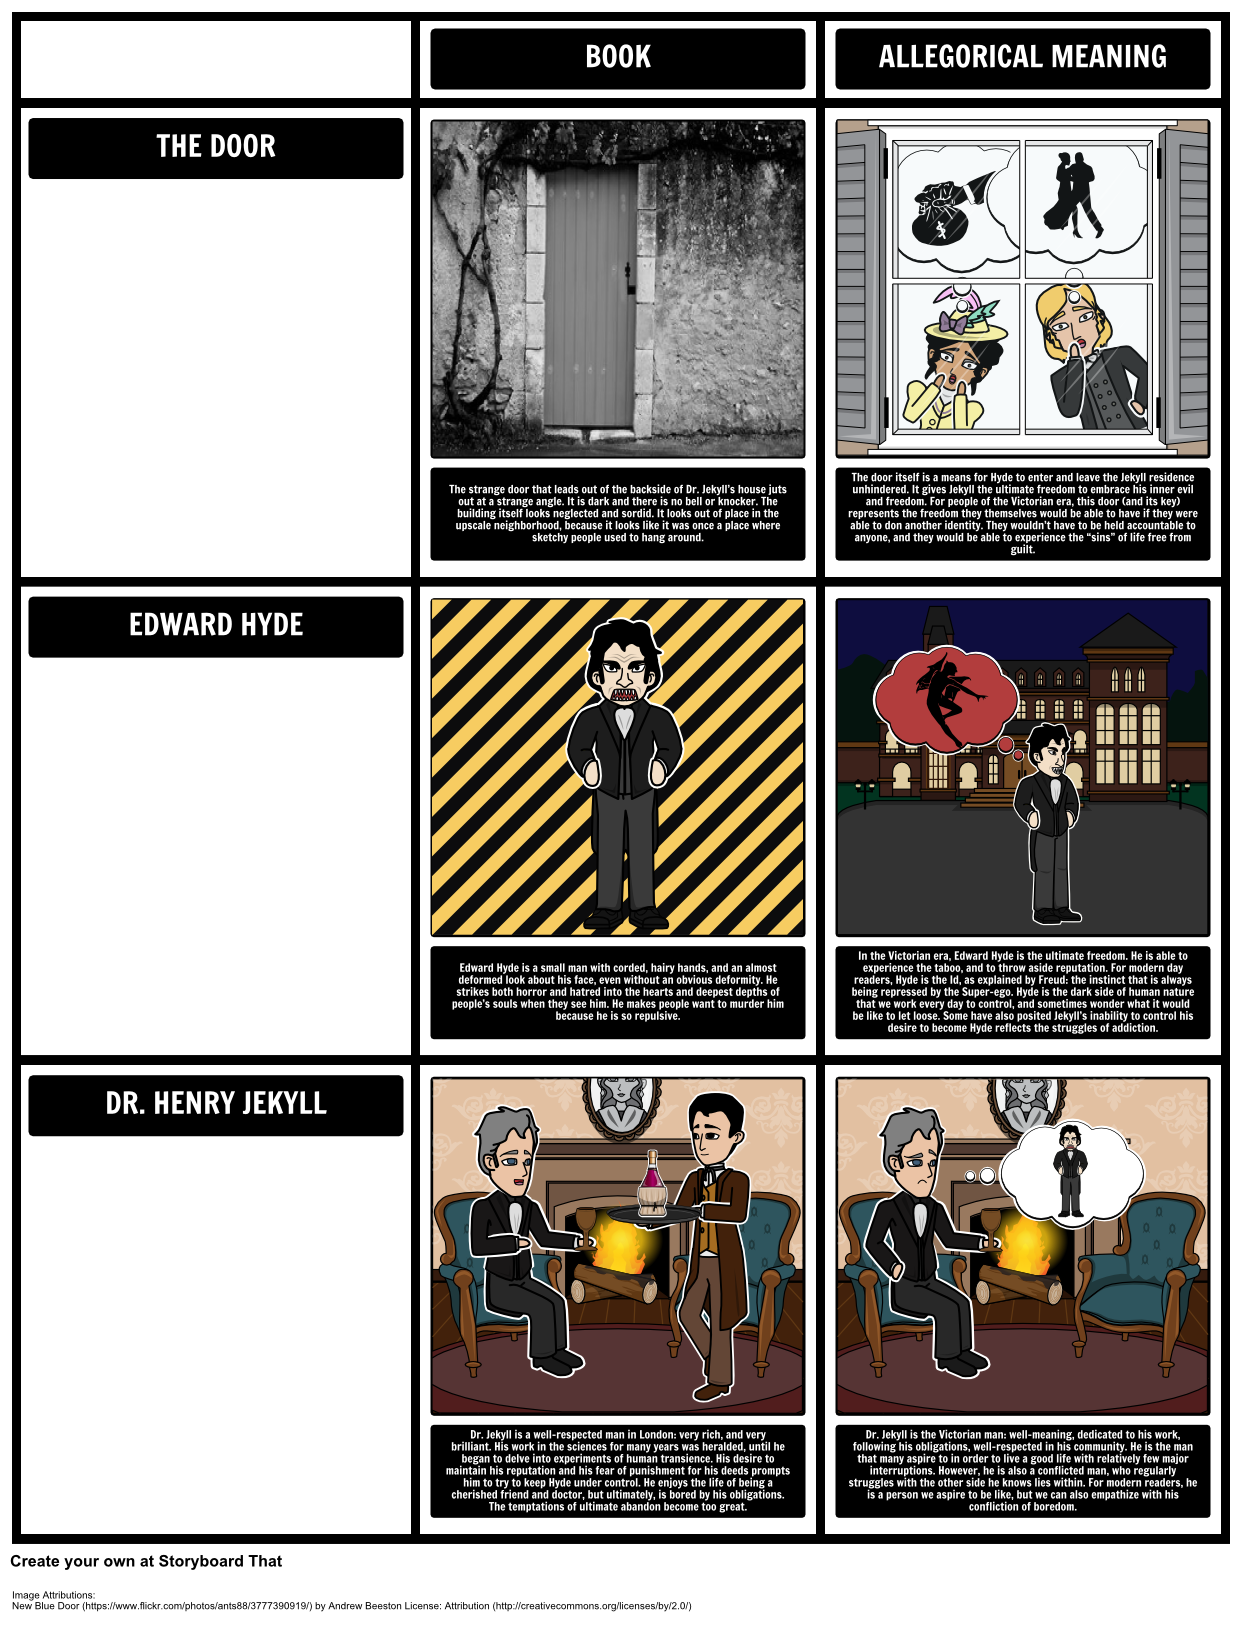 the masque of the red death by edgar allan poe allegory in this dr jekyll and mr hyde allegory have students create a grid graphic